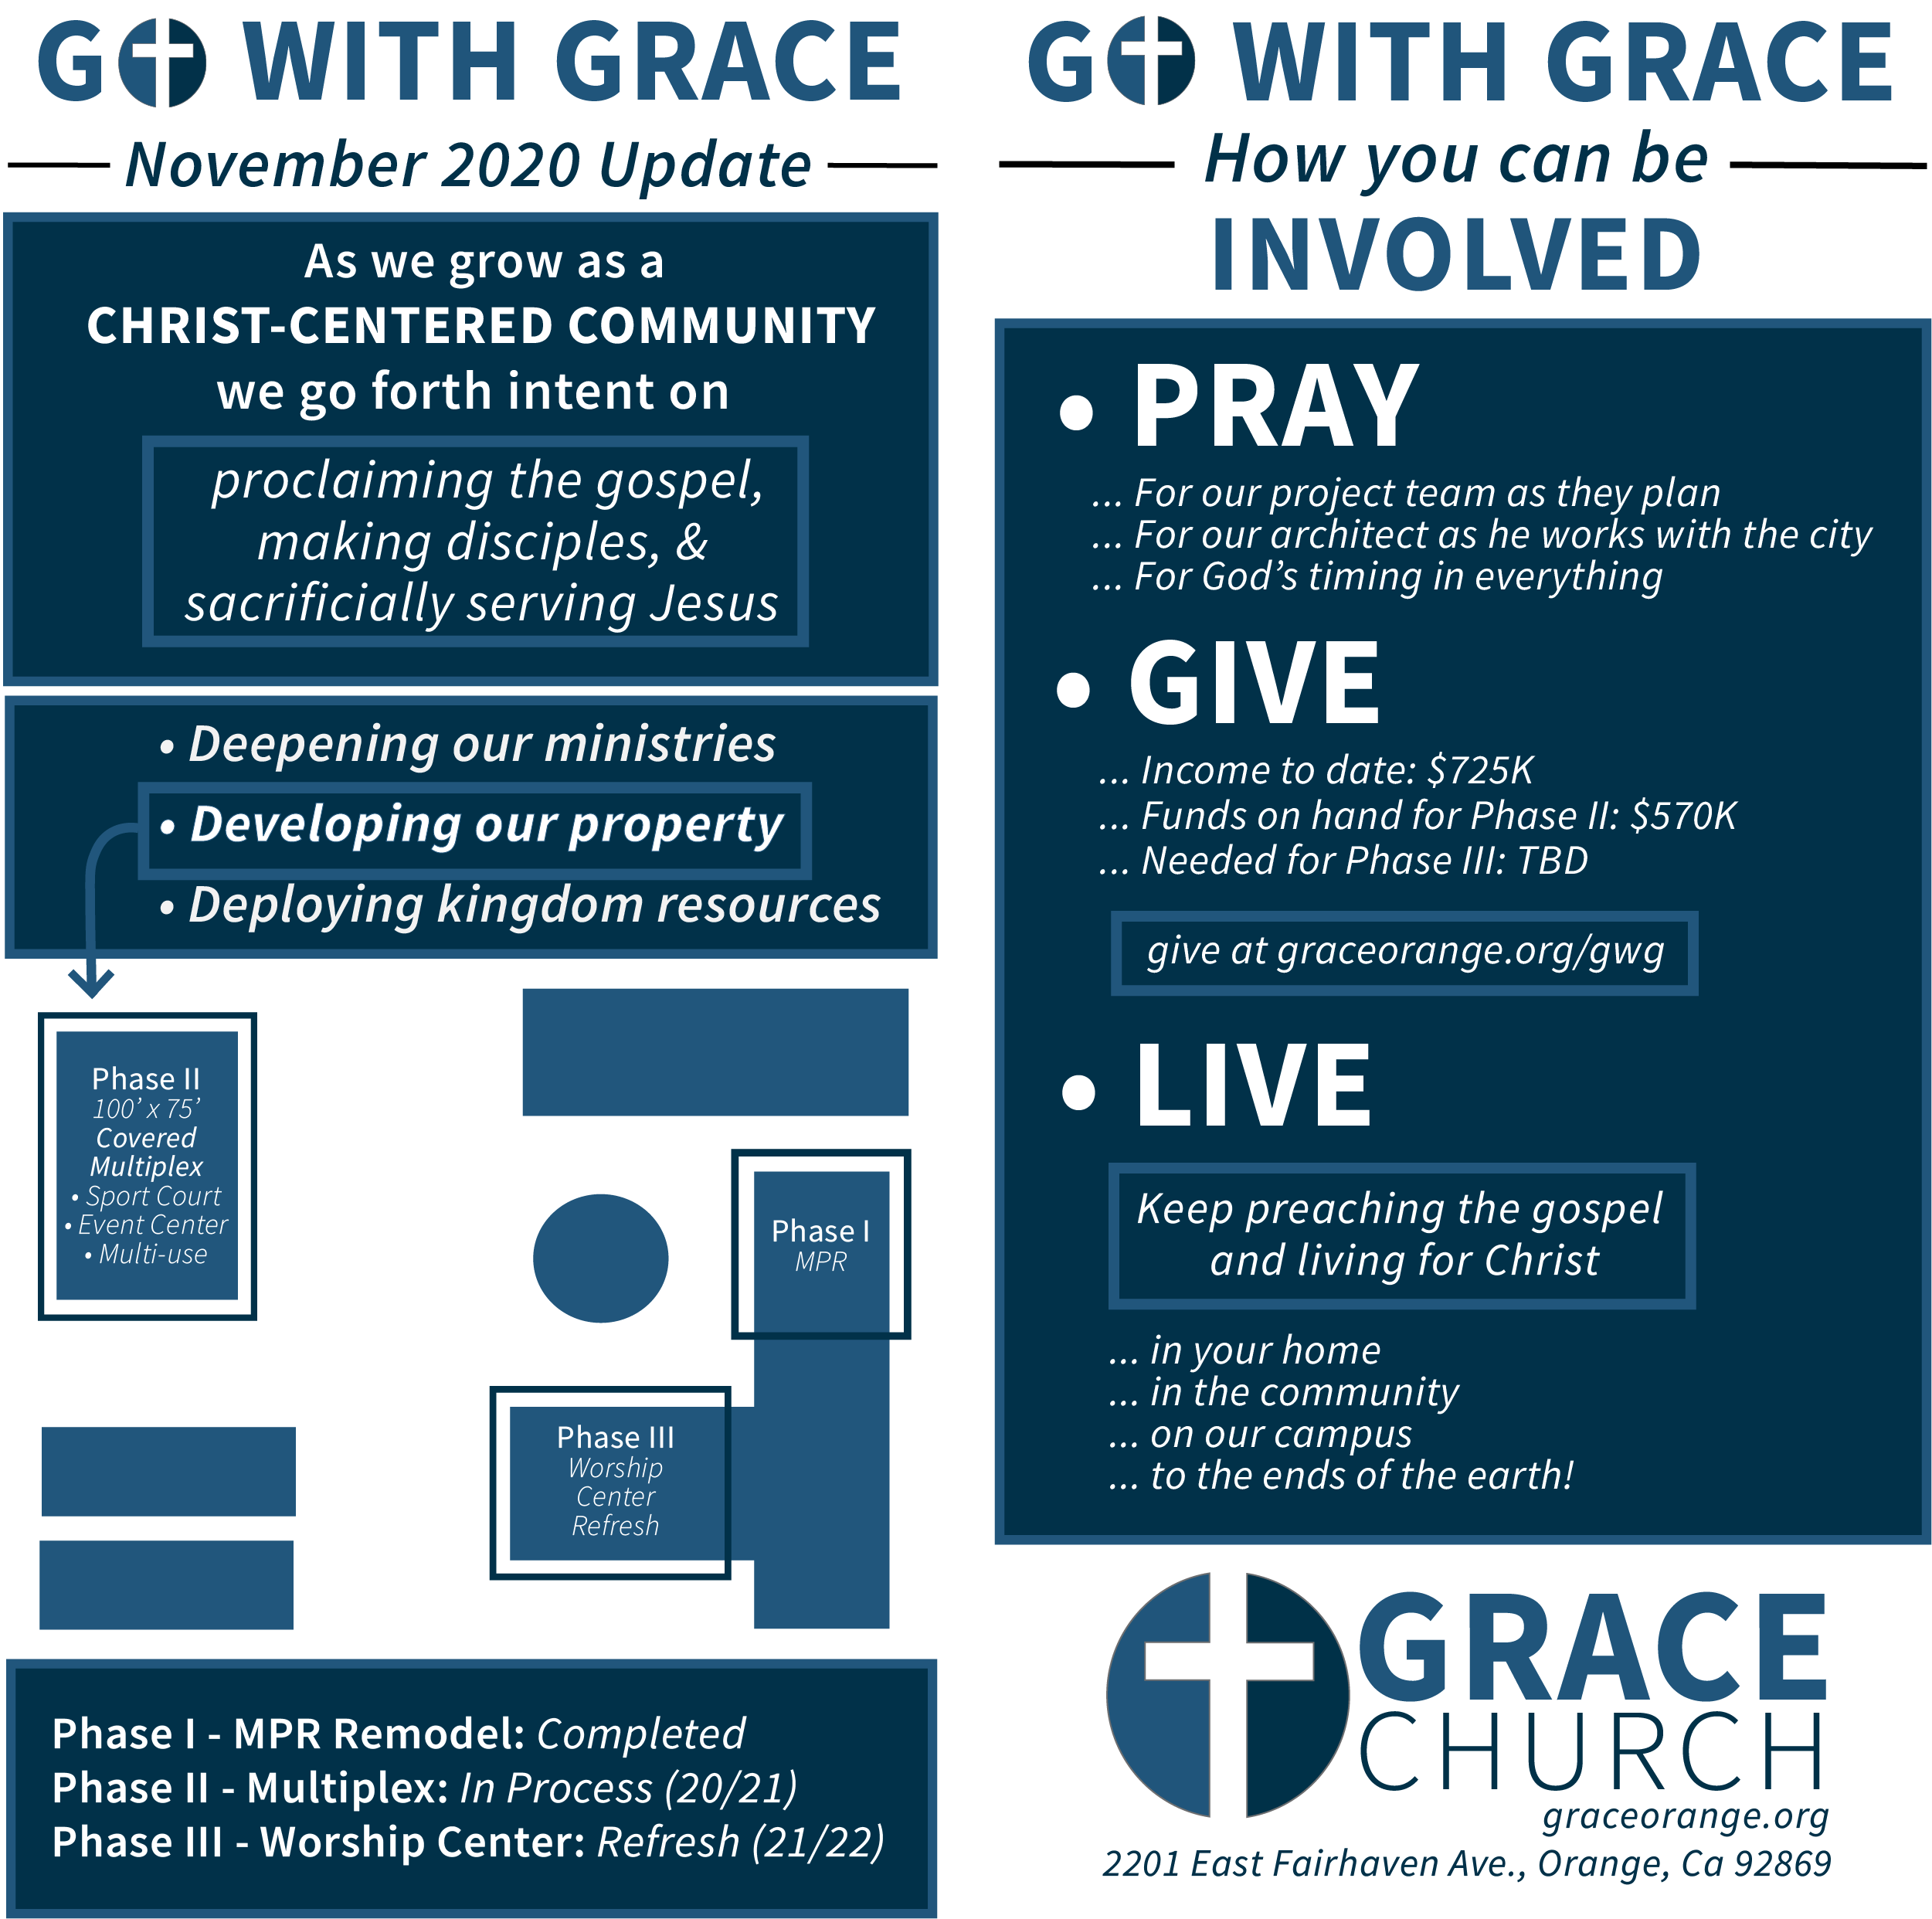 GO WITH GRACE UPDATE 2020